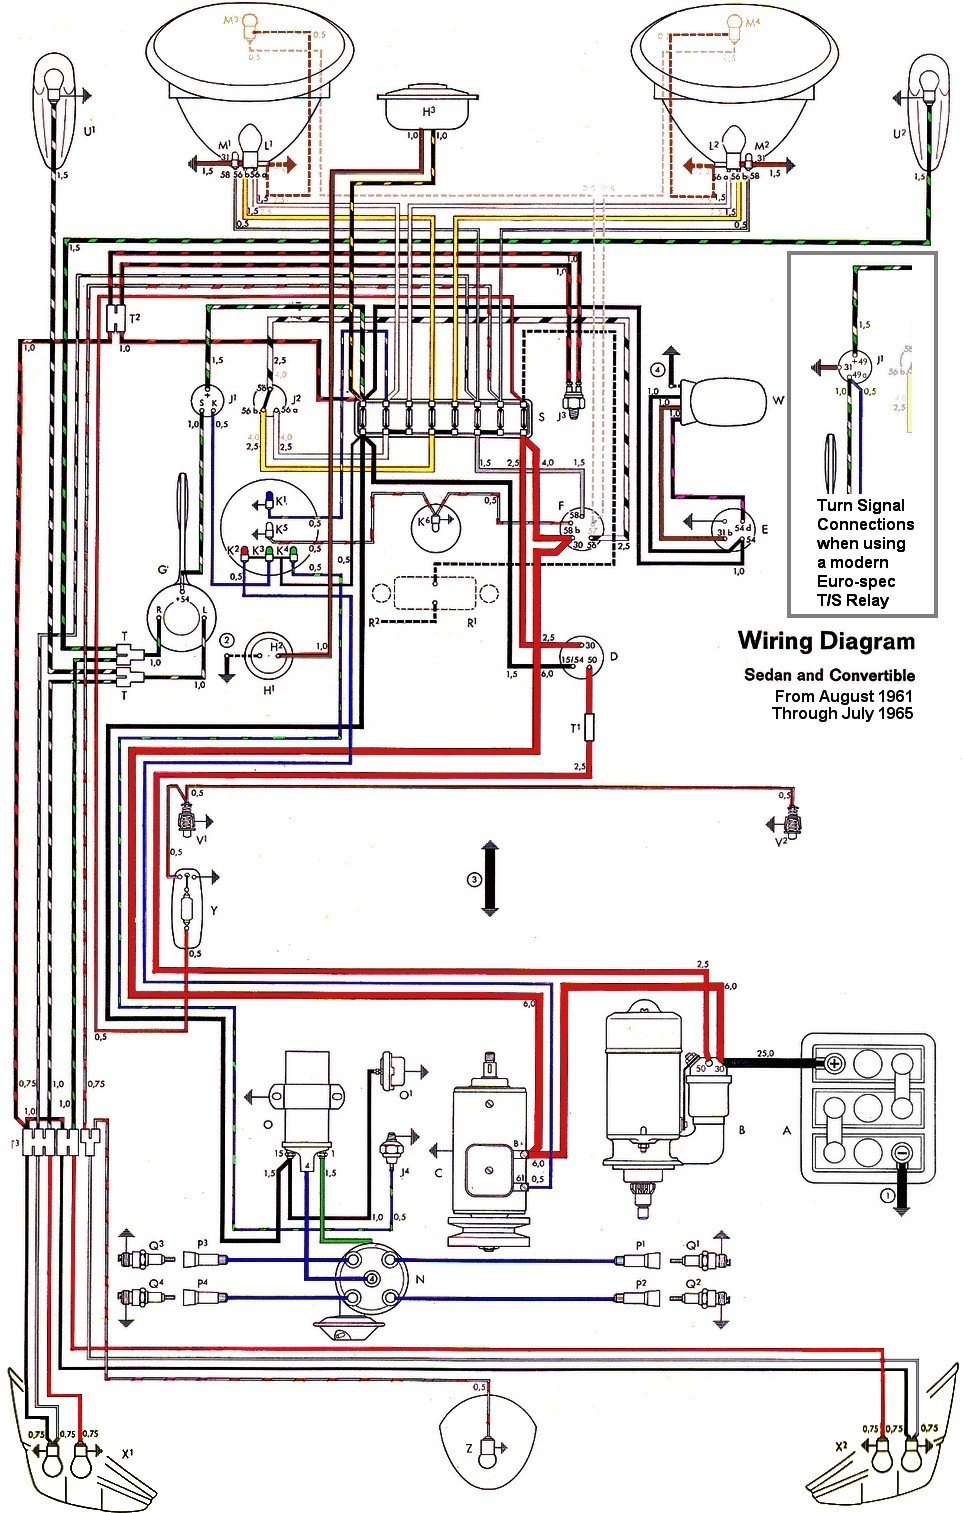 bug_62 65withinset wiring diagram vw beetle sedan and convertible 1961 1965 vw 1971 vw bus wiring diagram at gsmportal.co